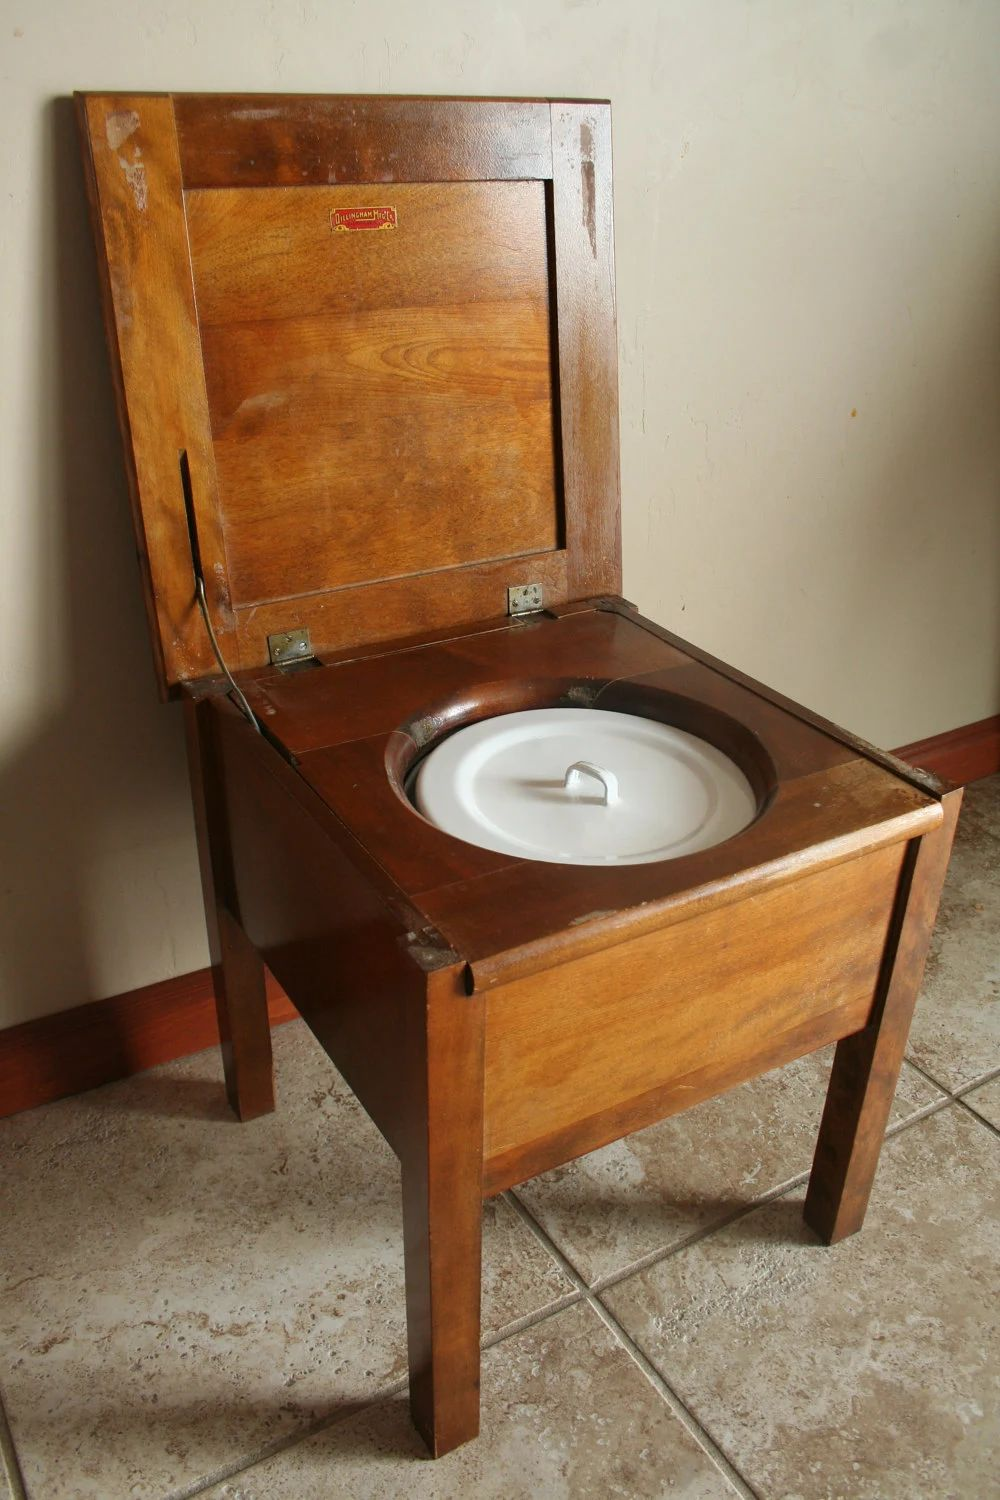 Antique commode chair wood with white and blue porcelain chamber pot